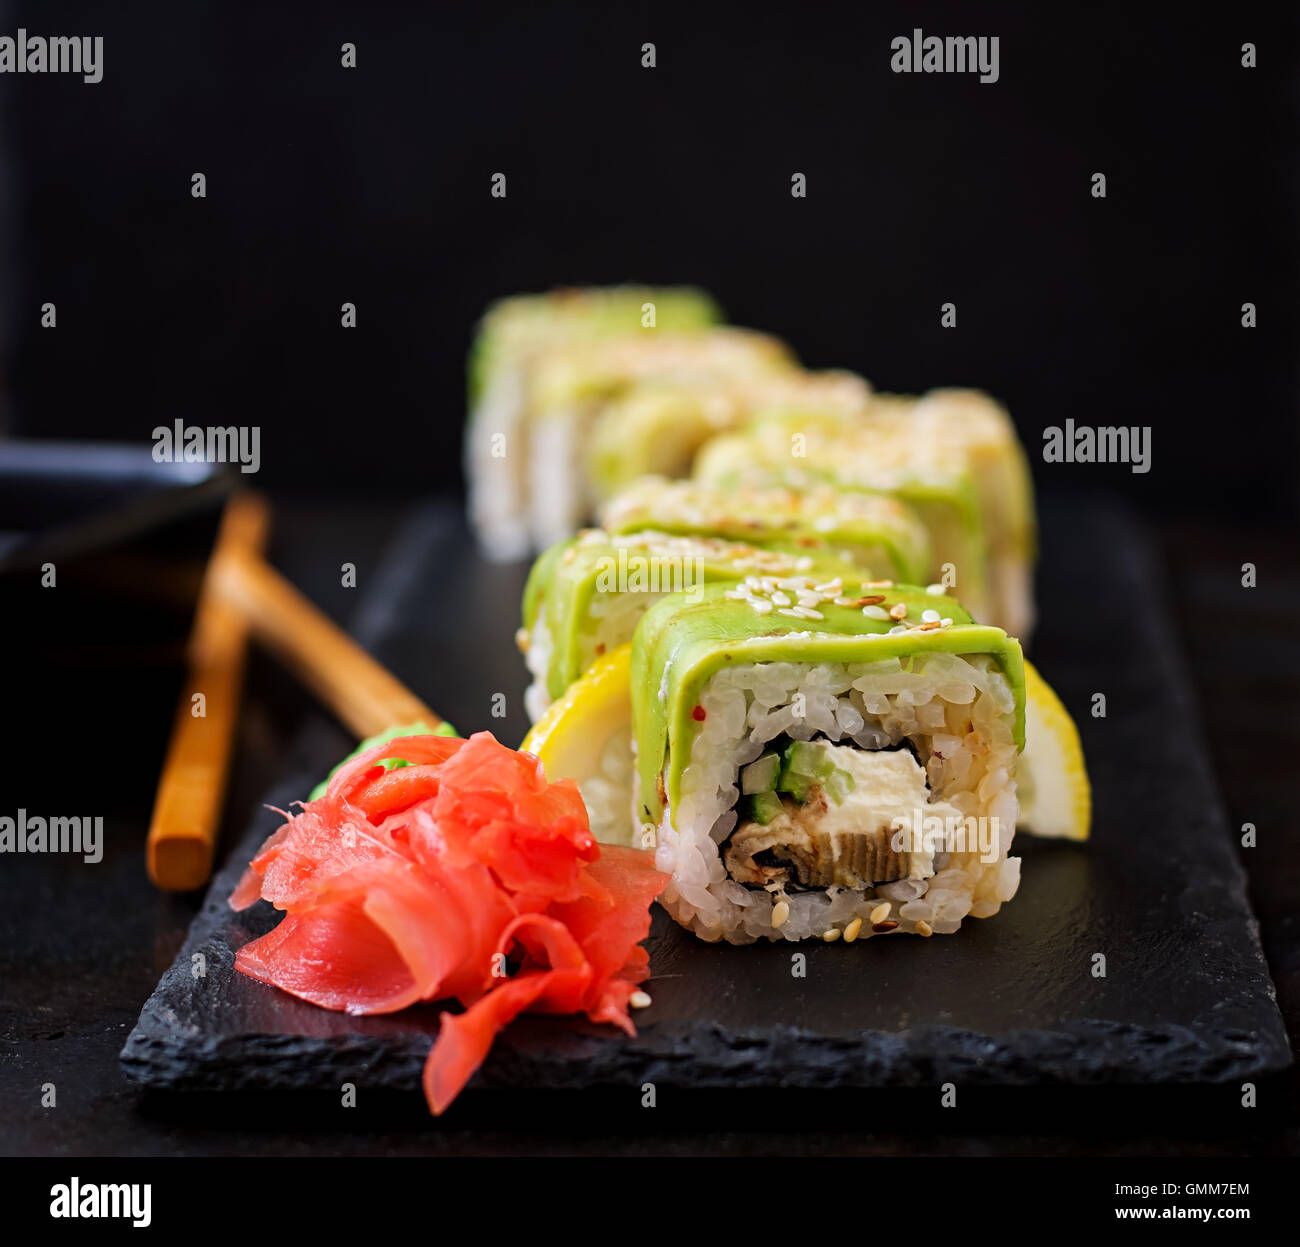 Traditional Japanese food - sushi, rolls and sauce on a black background. - Stock Image